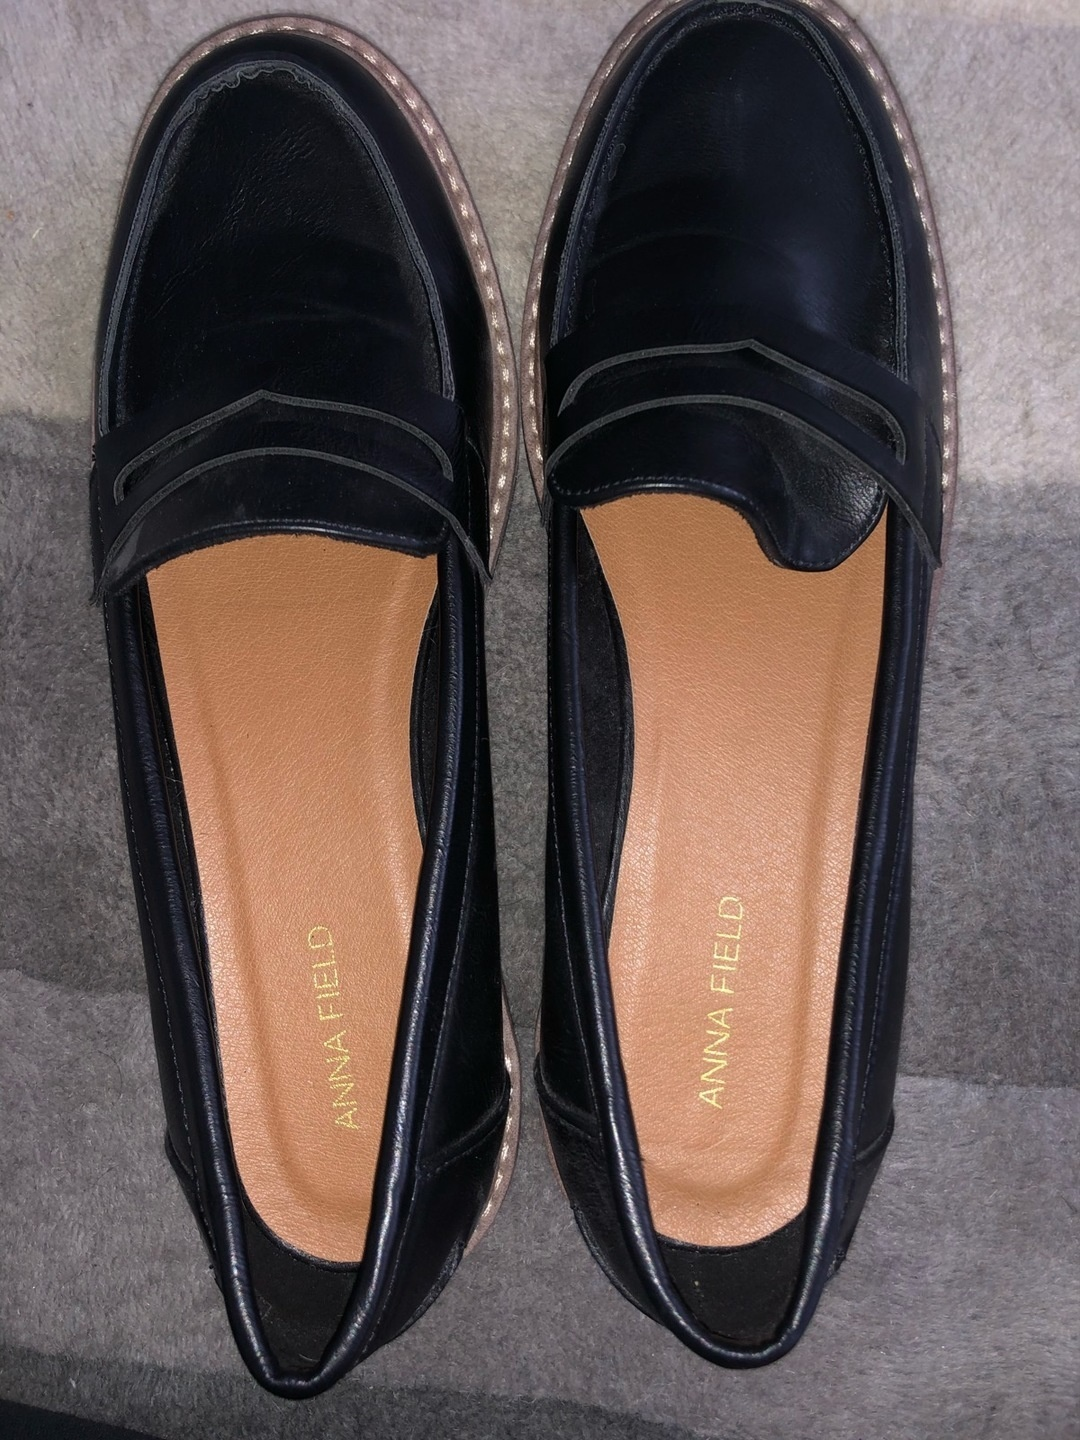 Women's flats & loafers - ANNA FIELD photo 4